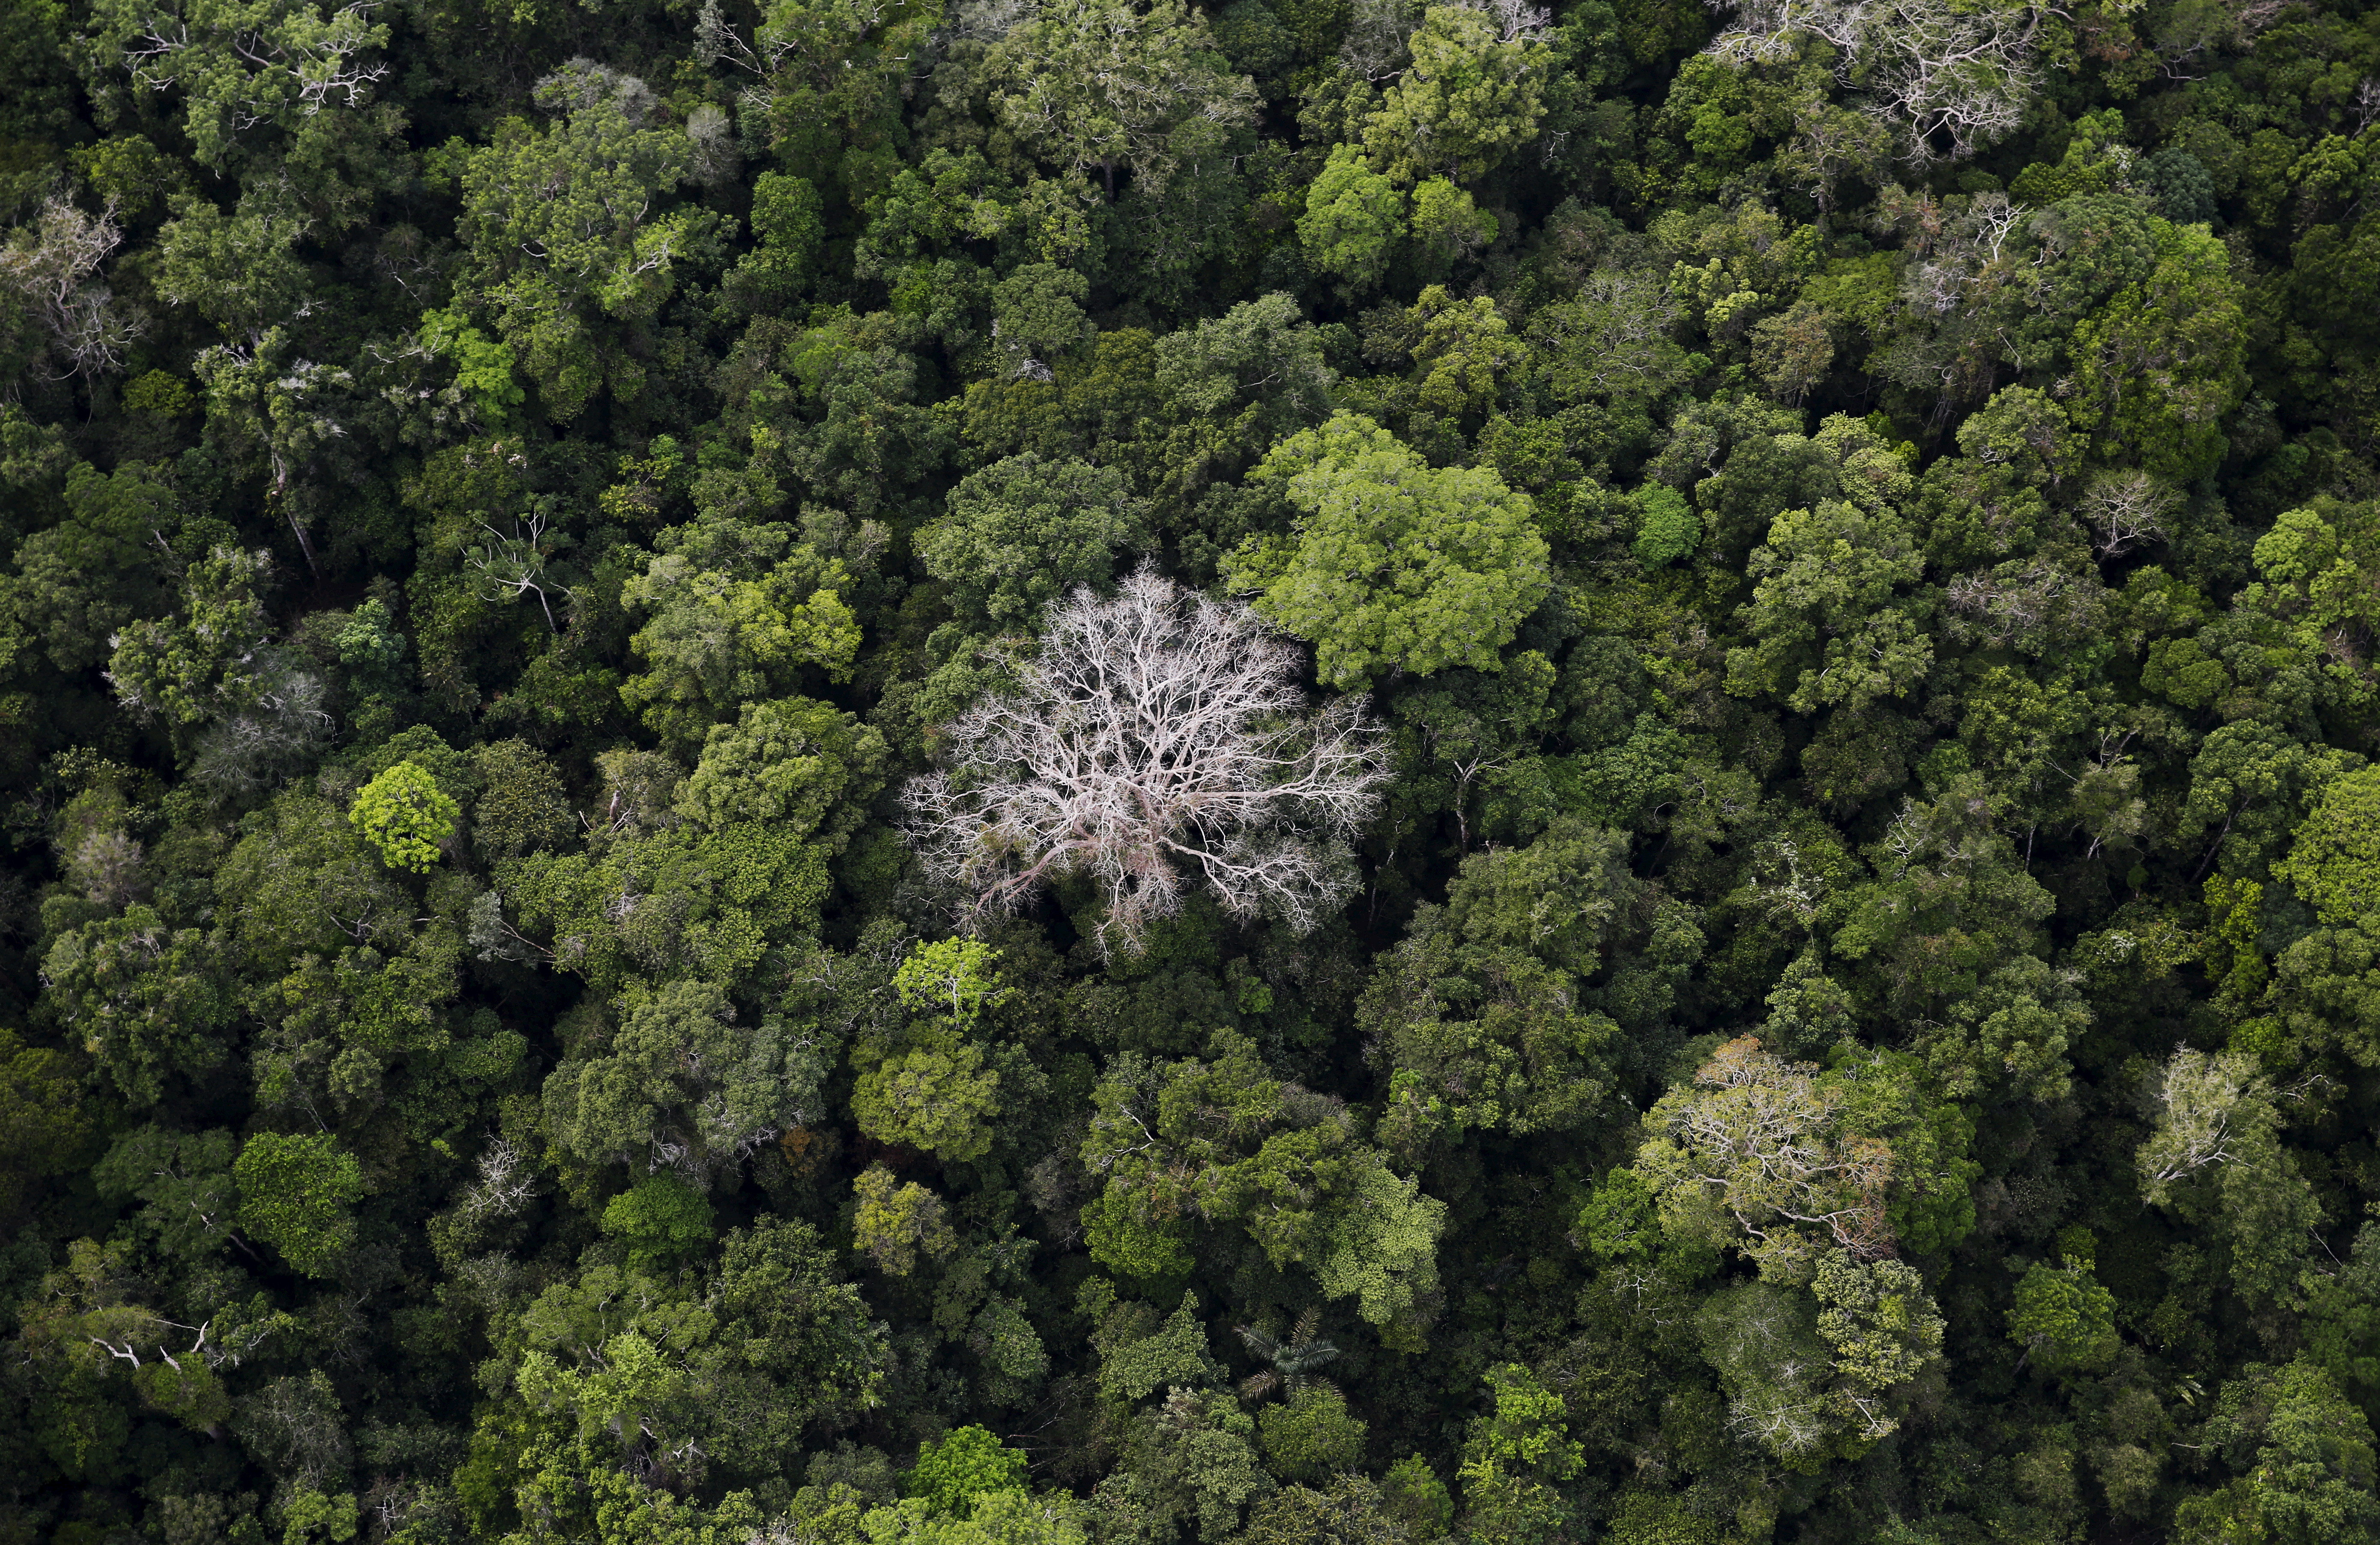 An aerial view shows the Amazon rainforest at the Bom Futuro National Forest near Rio Pardo in Porto Velho, Rondonia State, Brazil, September 3, 2015. The town of Rio Pardo, a settlement of about 4,000 people in the Amazon rainforest, rises where only jungle stood less than a quarter of a century ago. Loggers first cleared the forest followed by ranchers and farmers, then small merchants and prospectors. Brazil's government has stated a goal of eliminating illegal deforestation, but enforcing the law in remote corners like Rio Pardo is far from easy. REUTERS/Nacho Doce